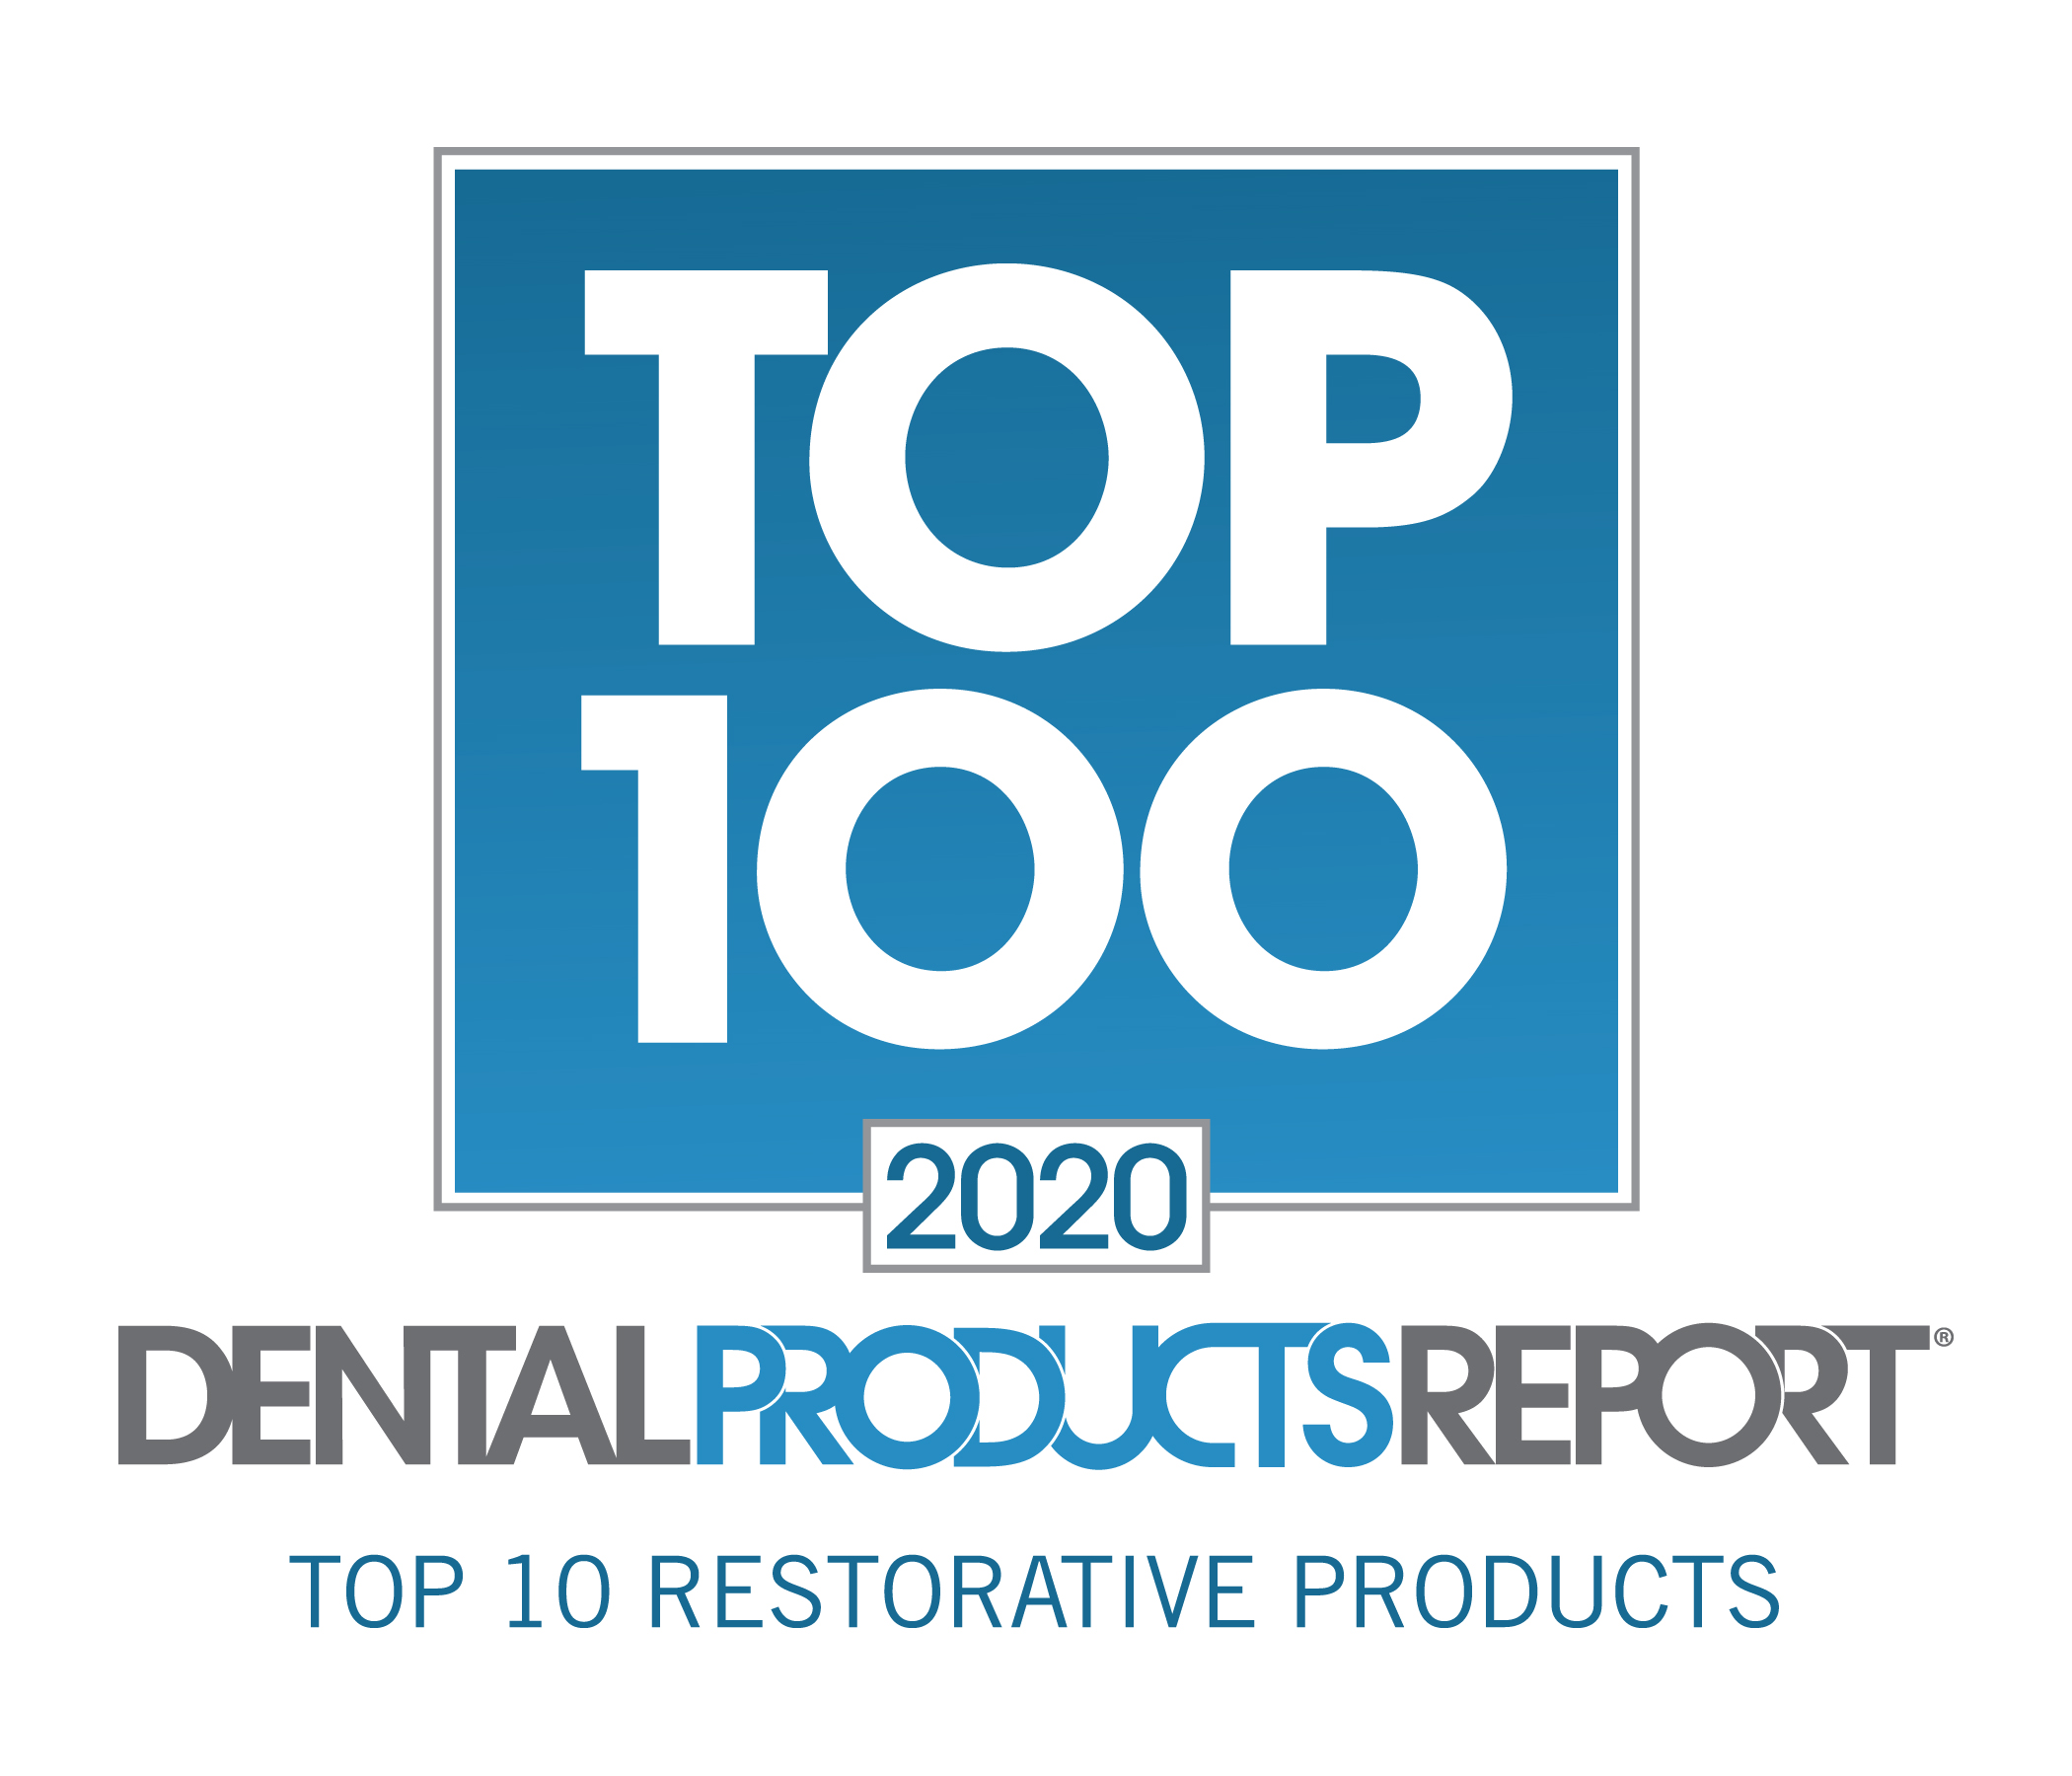 Dental Product Reports Top 10 Restorative Products Award